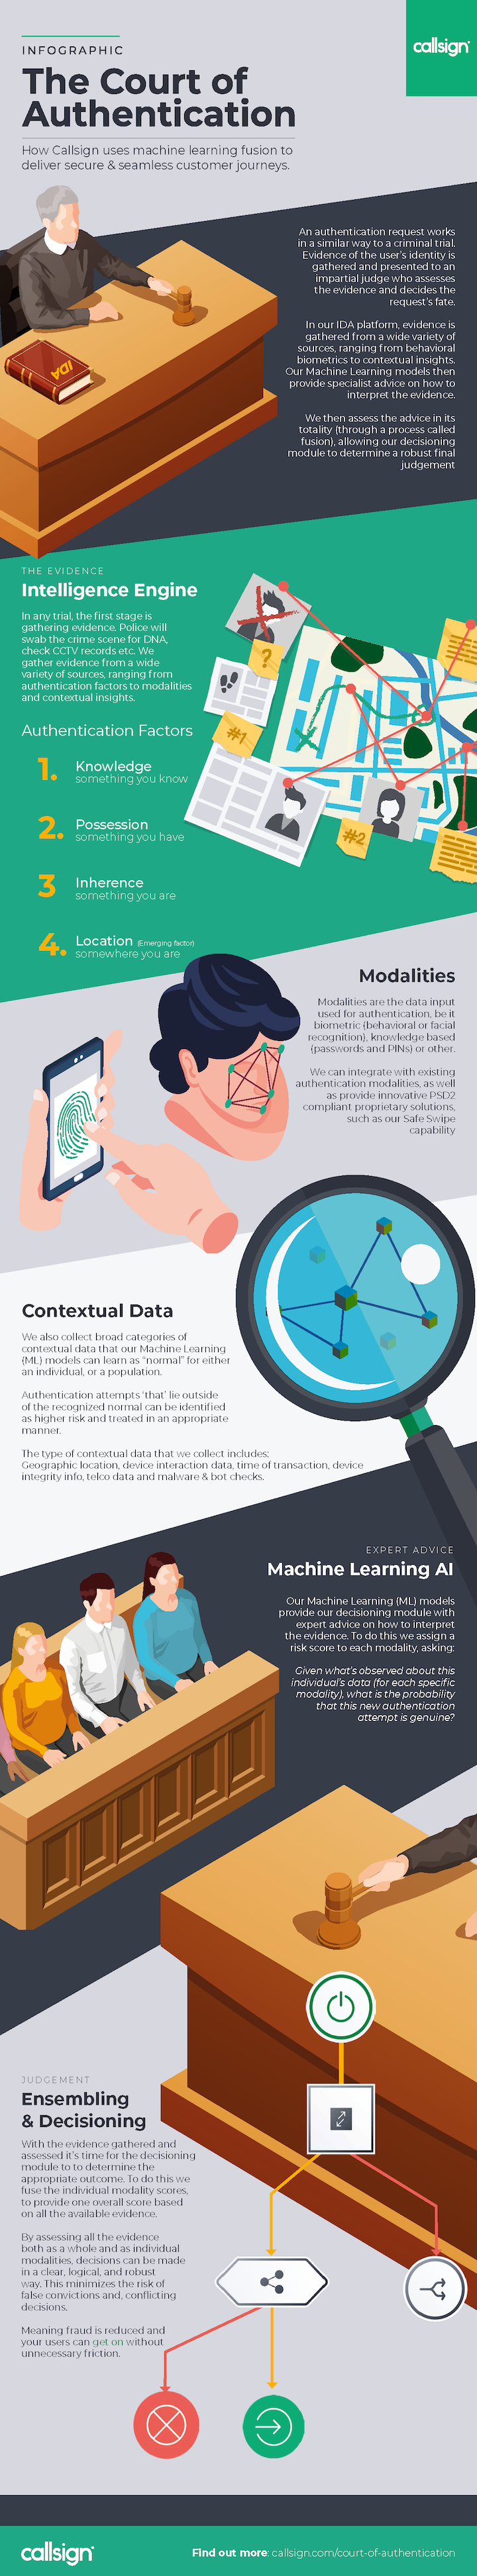 court-of-authentication infographic-blog-image